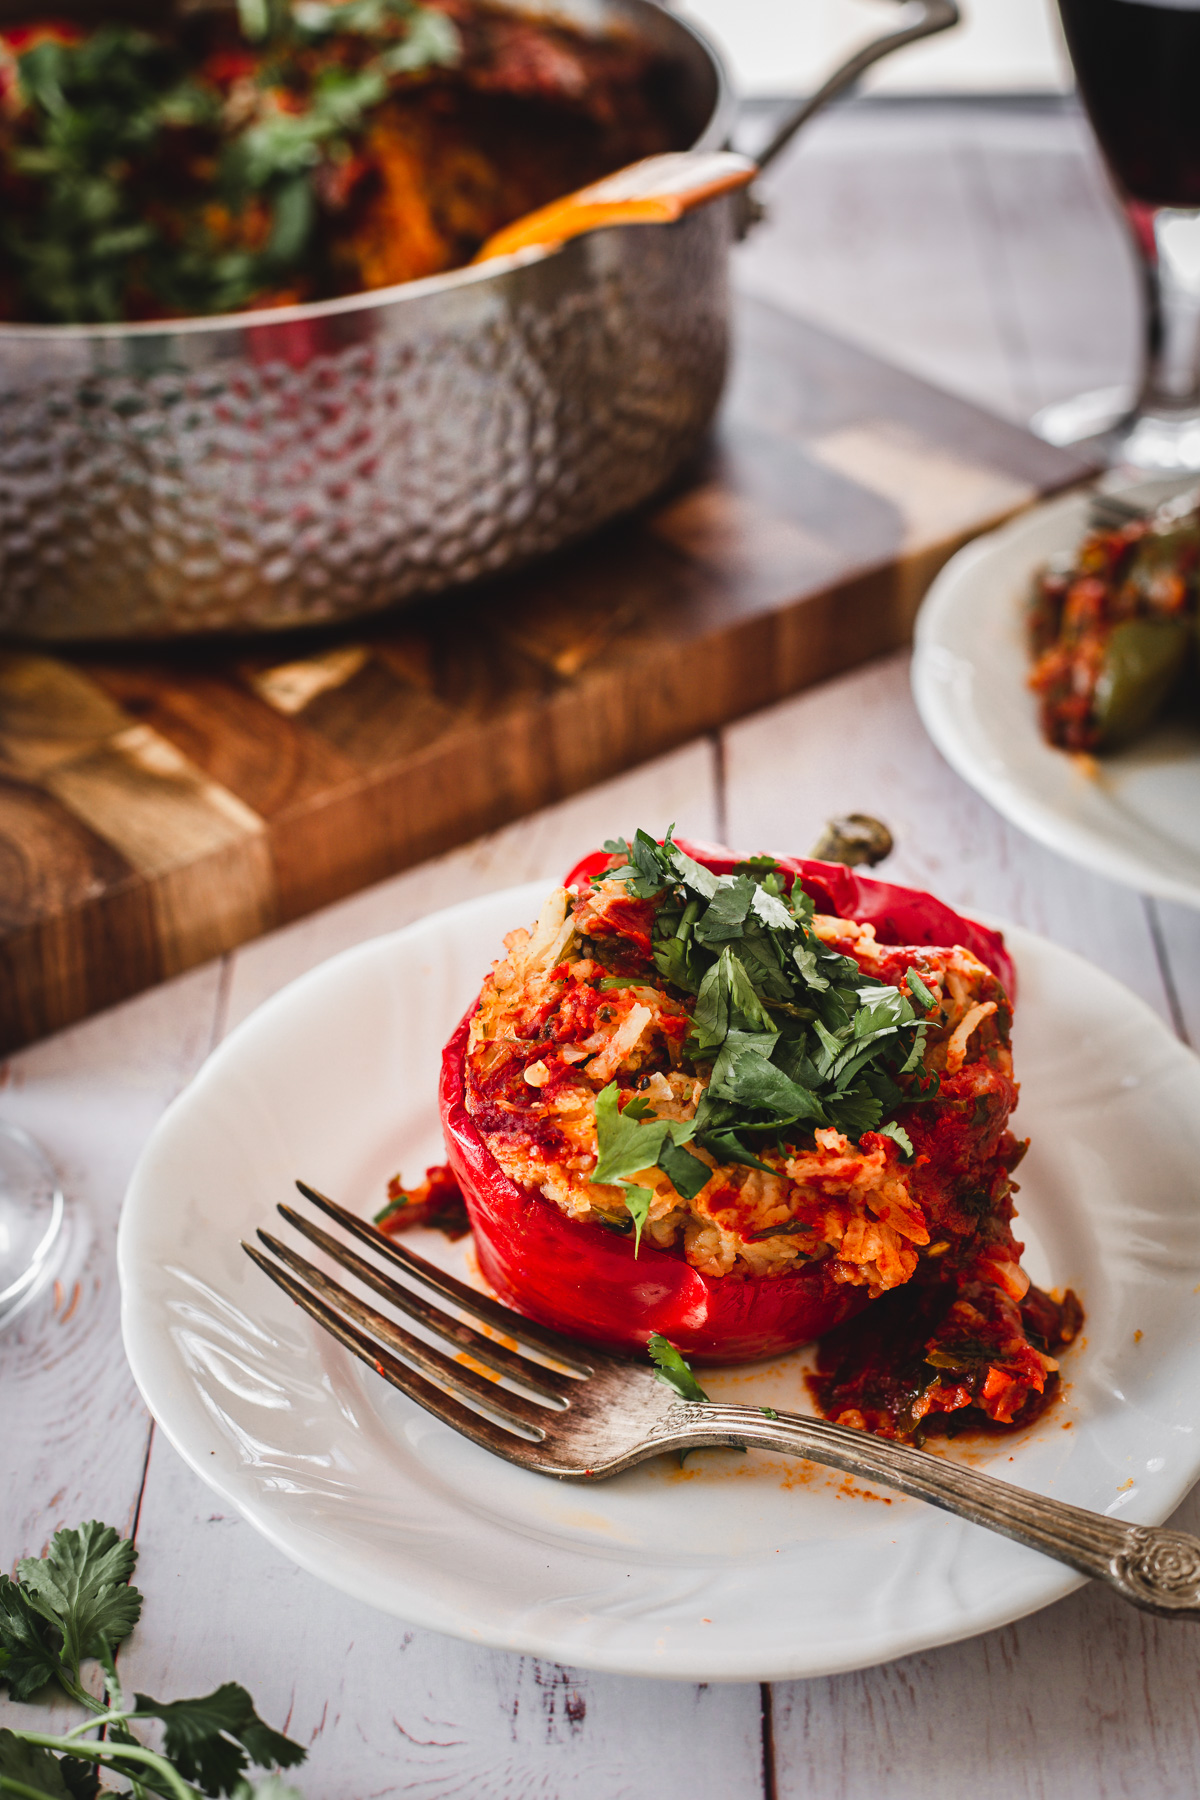 red stuffed pepper, wine glass and fork